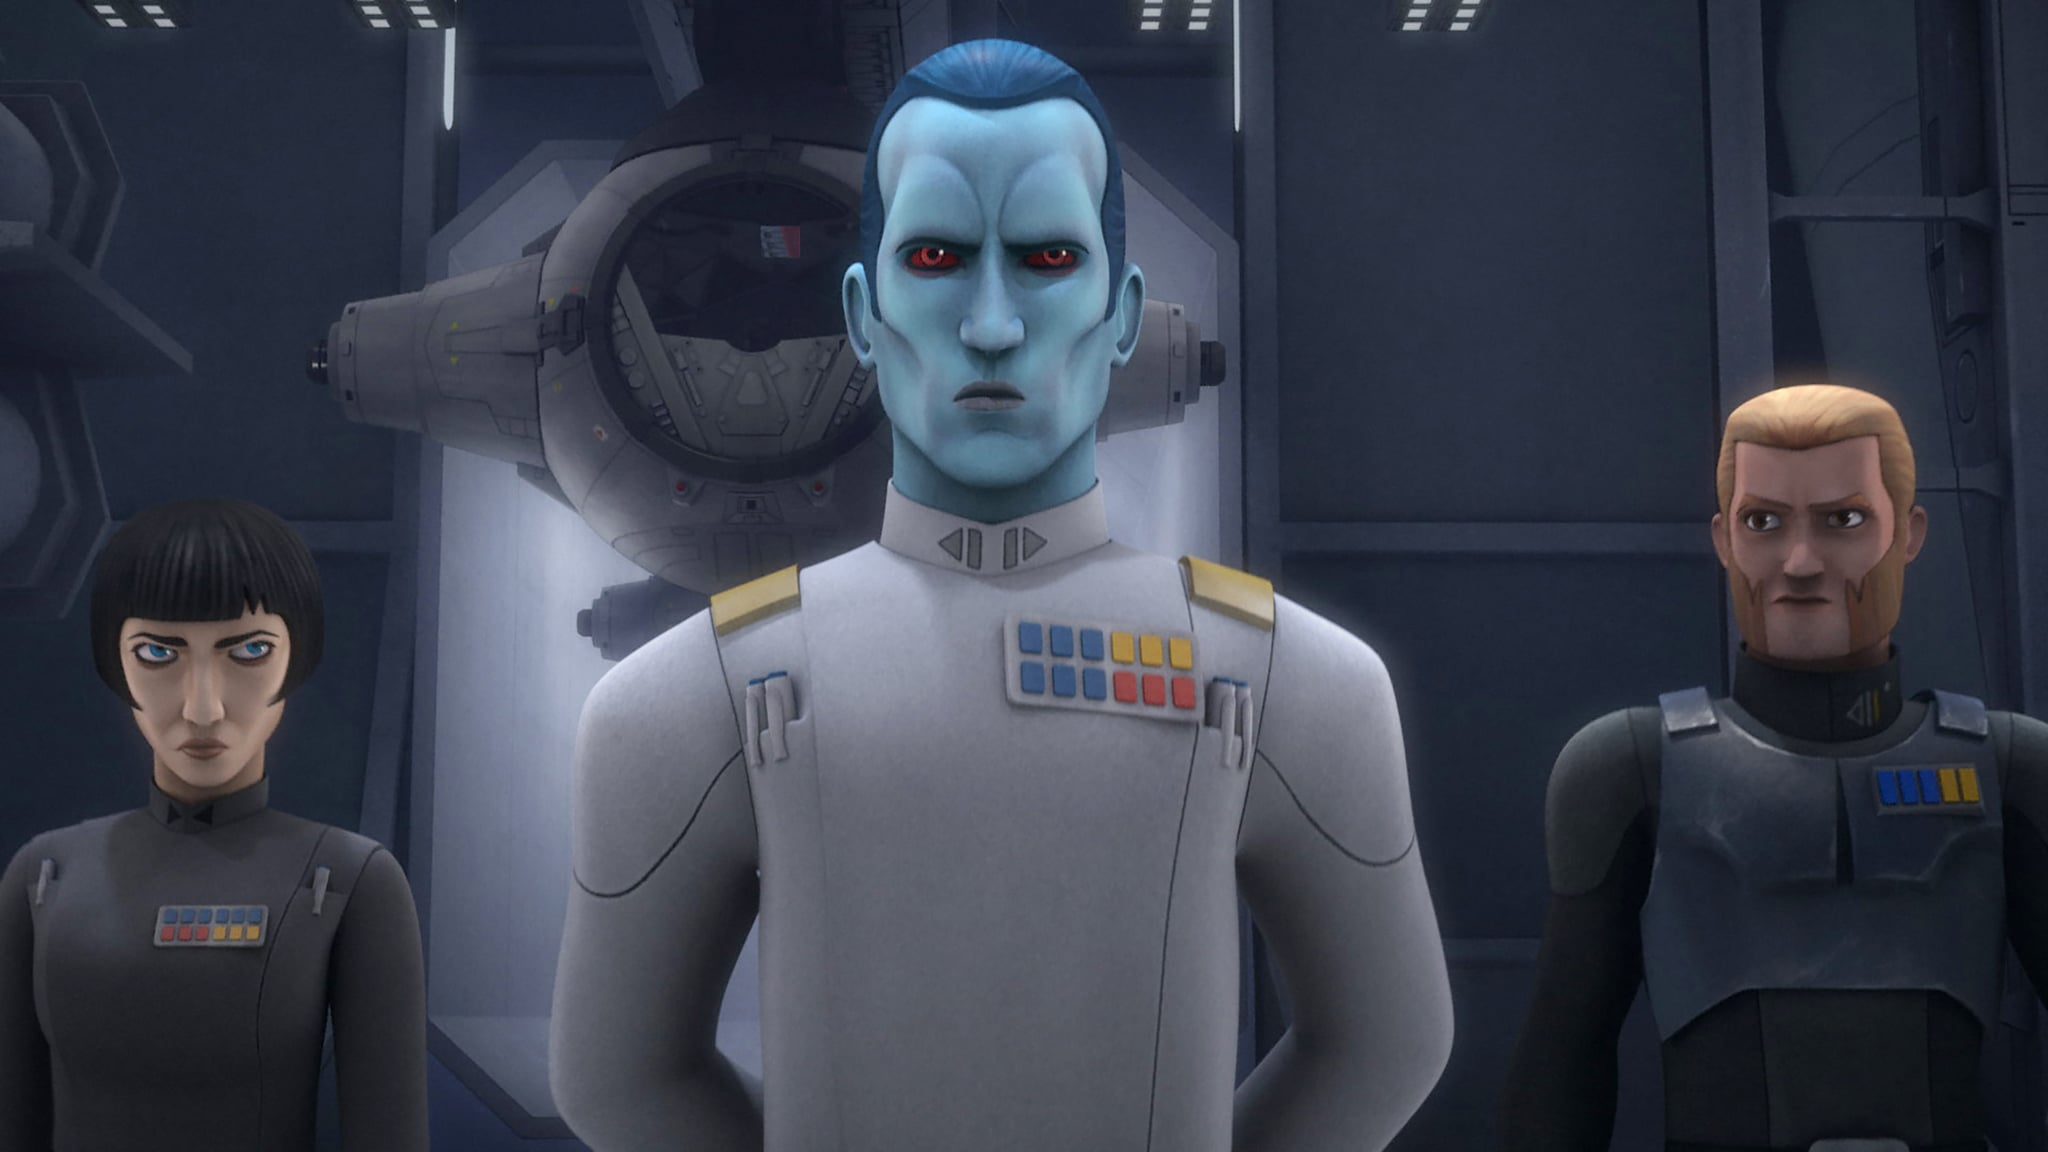 STAR WARS REBELS, (from left): Arihnda Pryce, Grand Admiral Thrawn, Agent Kallus, 'An Inside Man', (Season 3, ep. 309, aired Dec. 3, 2016). Disney XD / courtesy Everett Collection